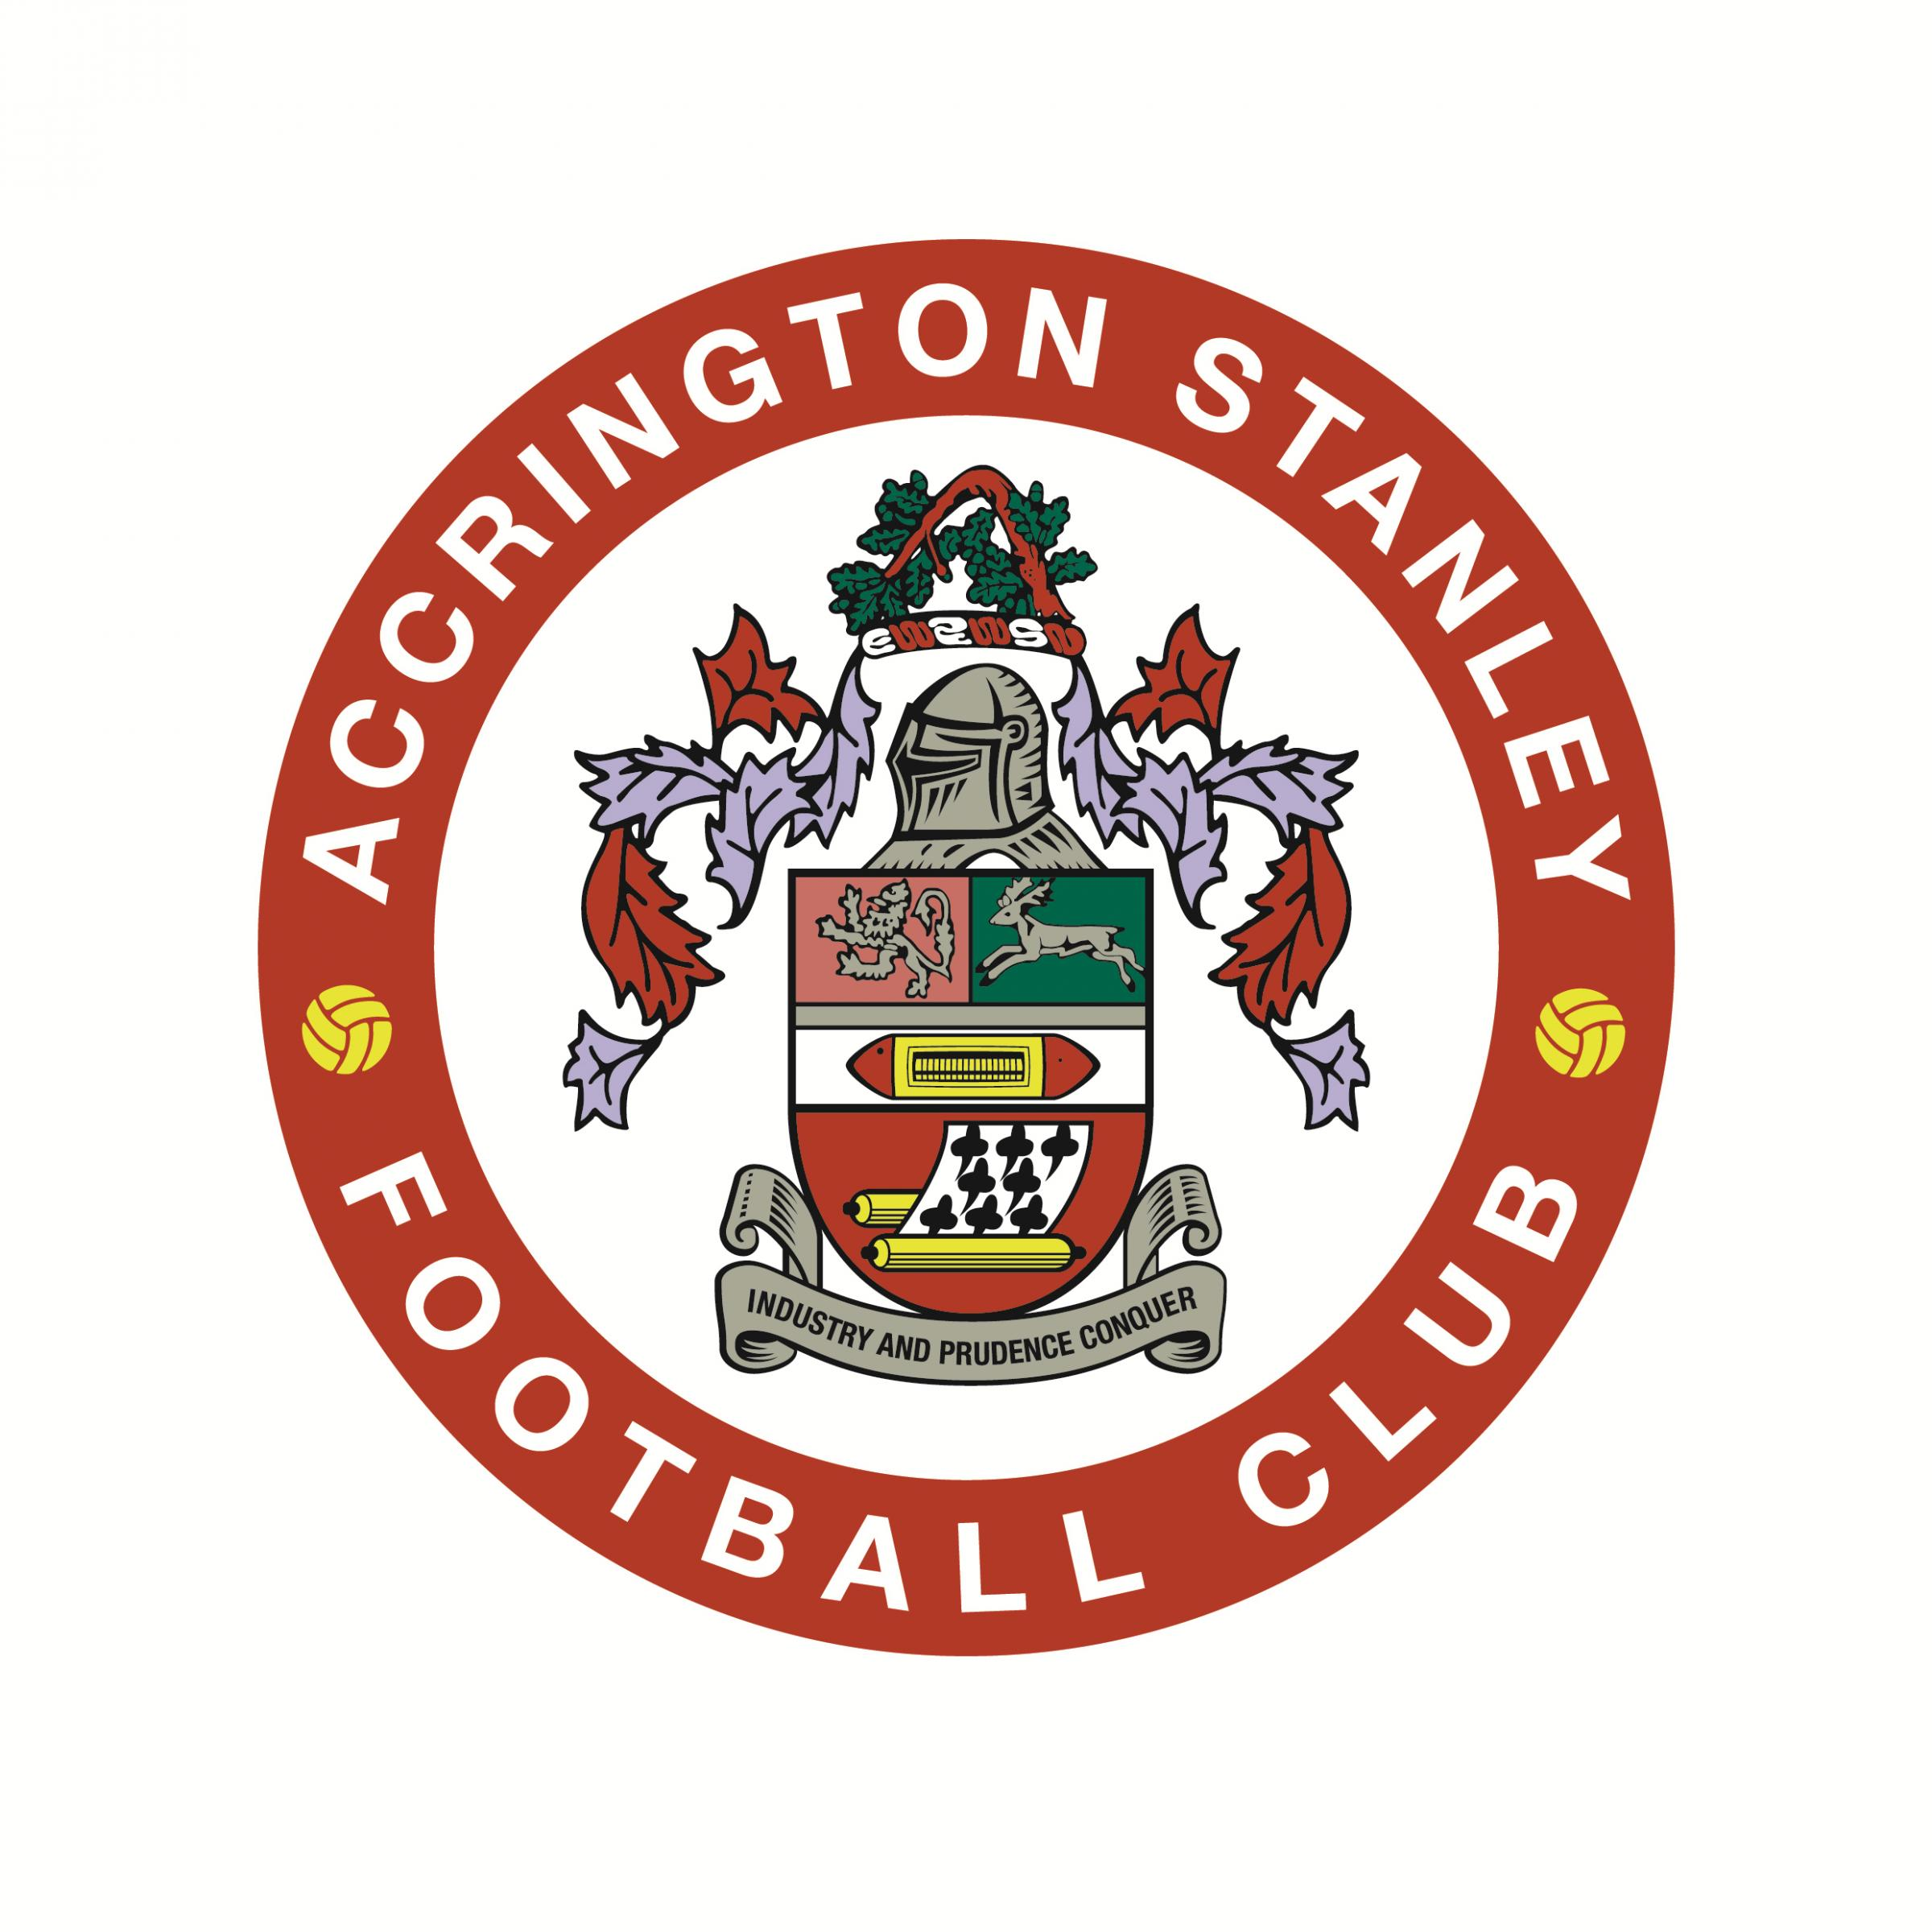 OPPOSITION INSIGHT: Accrington Stanley